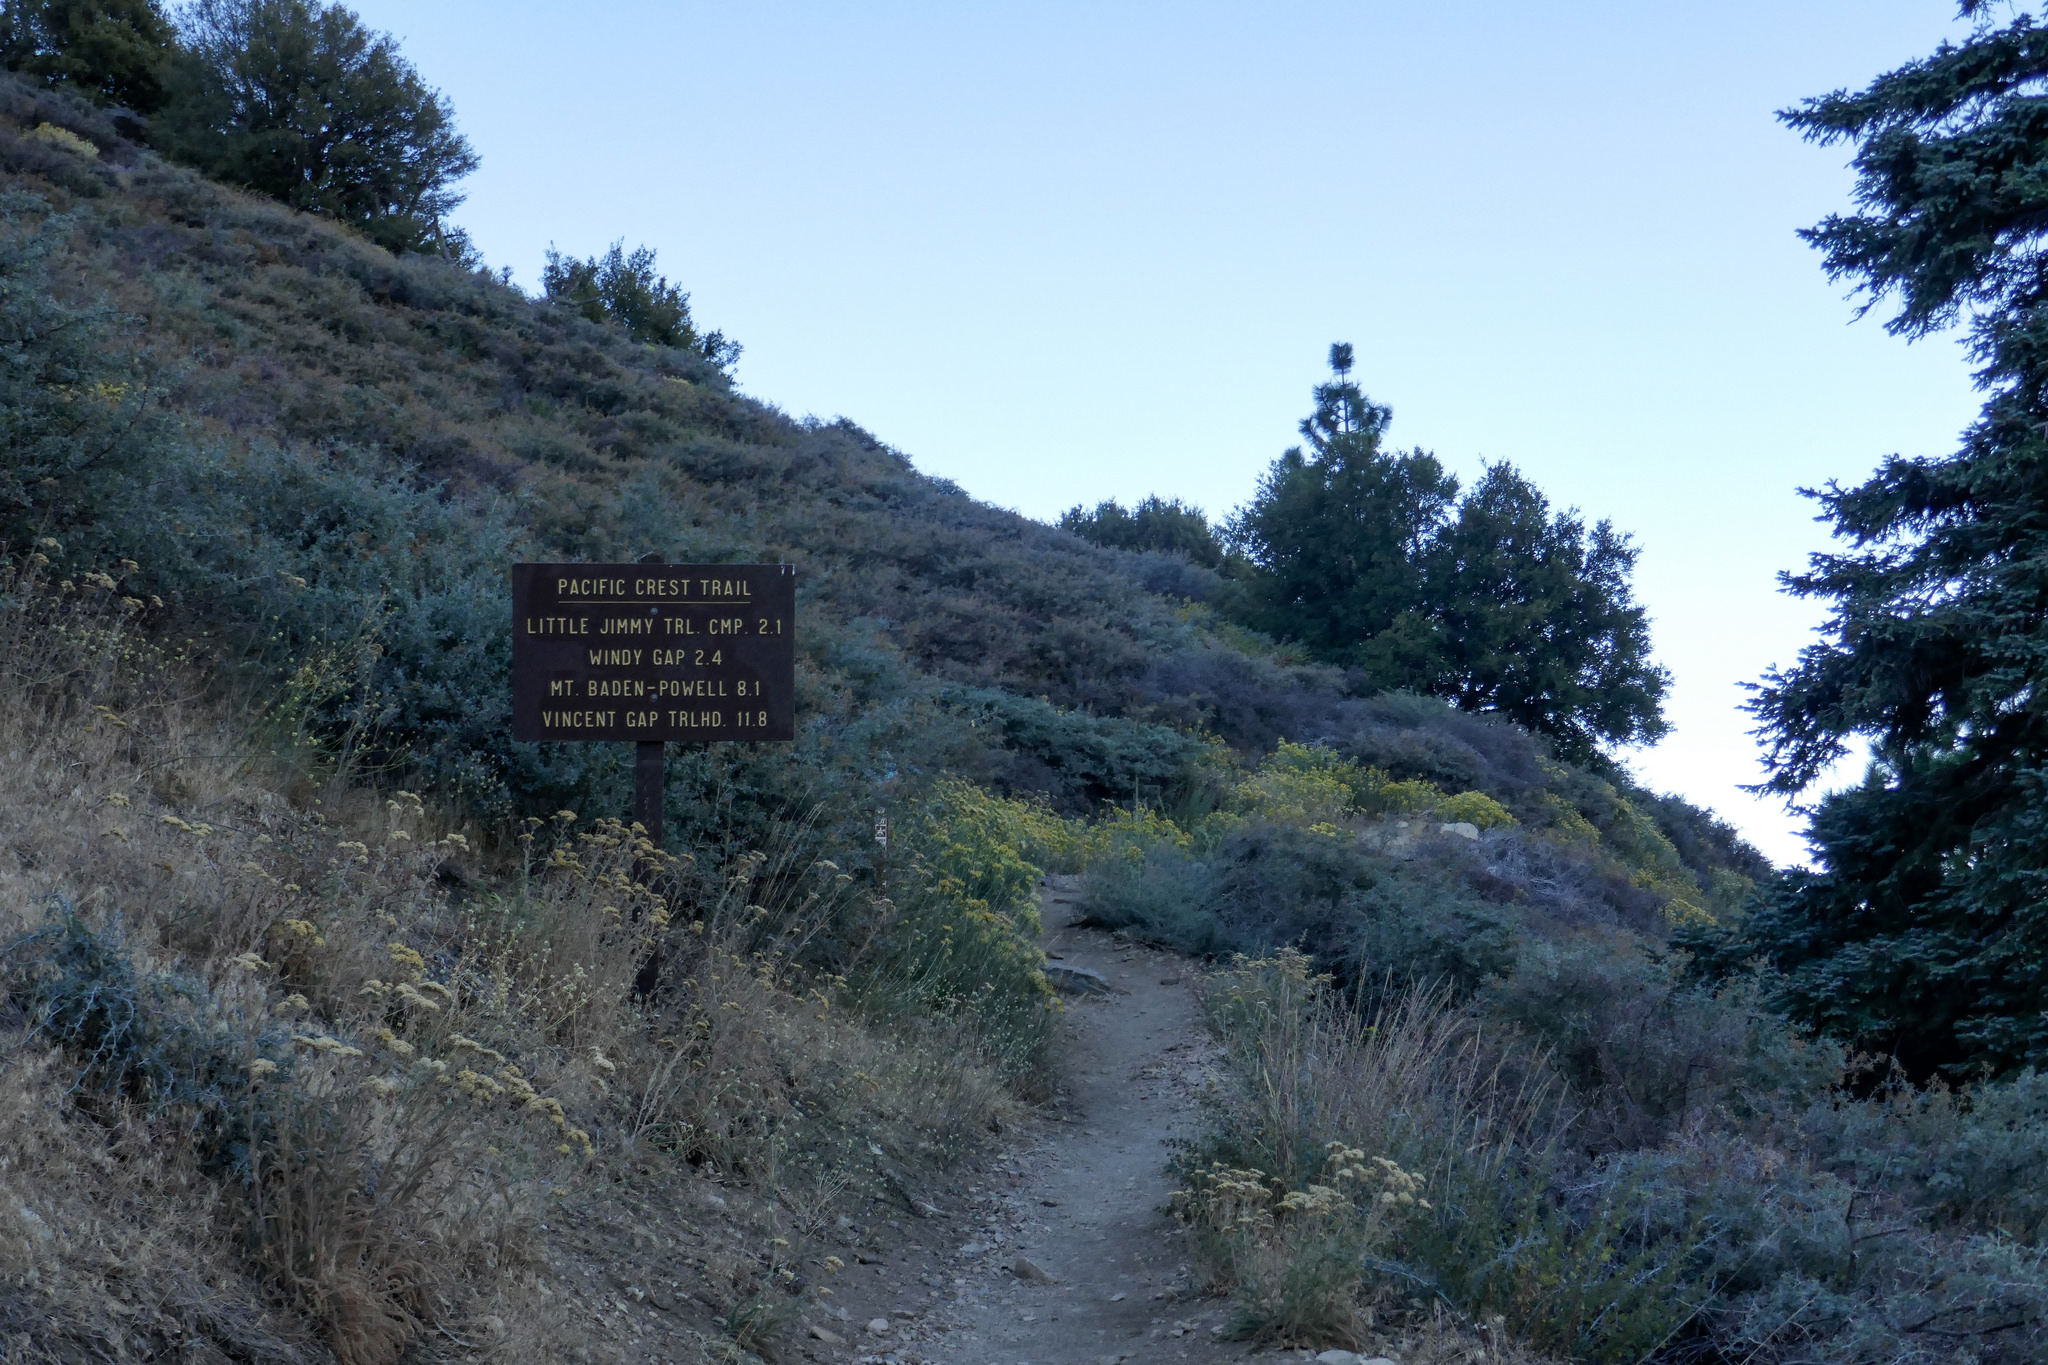 Starting out at Islip Saddle on the Pacific Crest Trail.